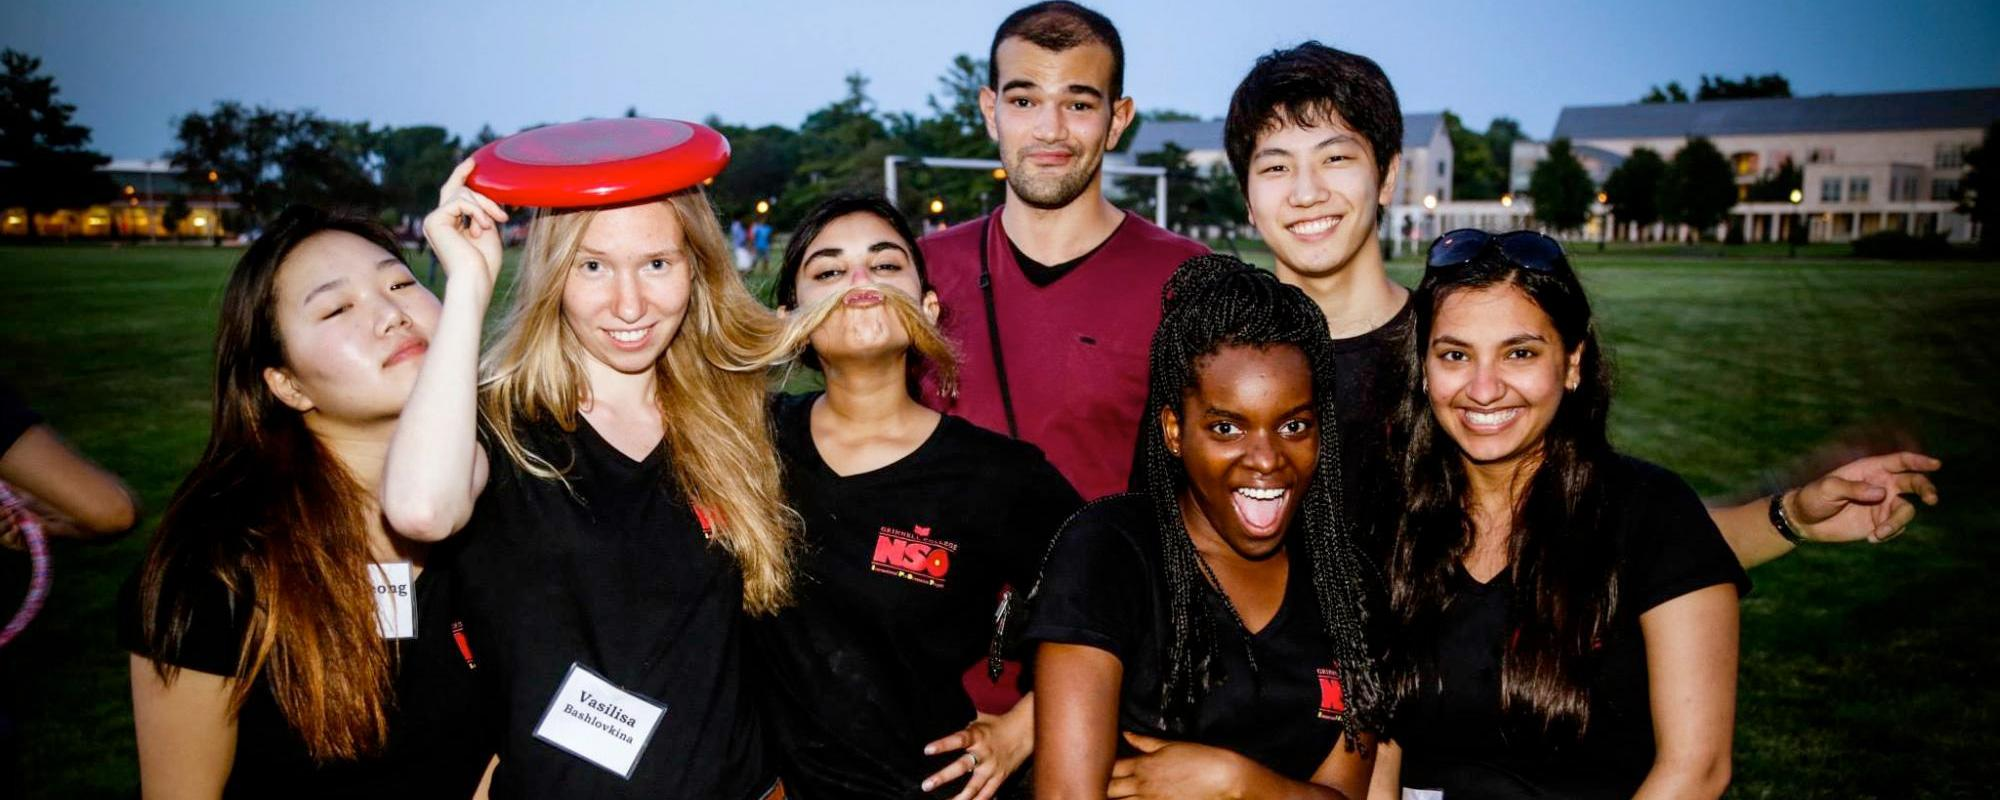 International Pre-Orientation Program students get to know each other